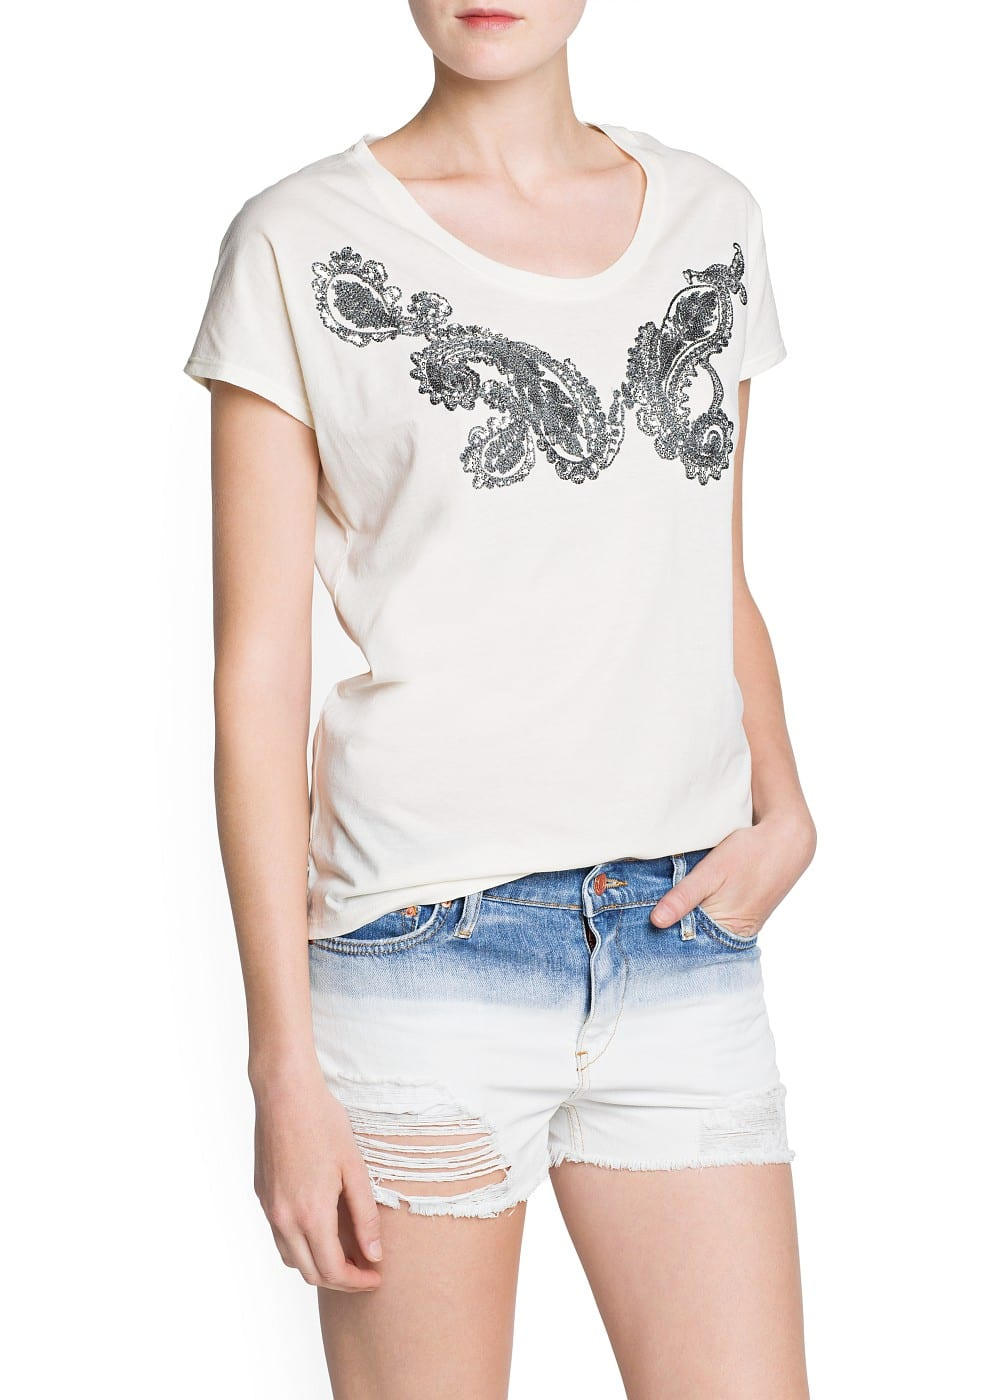 Baroque embroidery cotton t-shirt